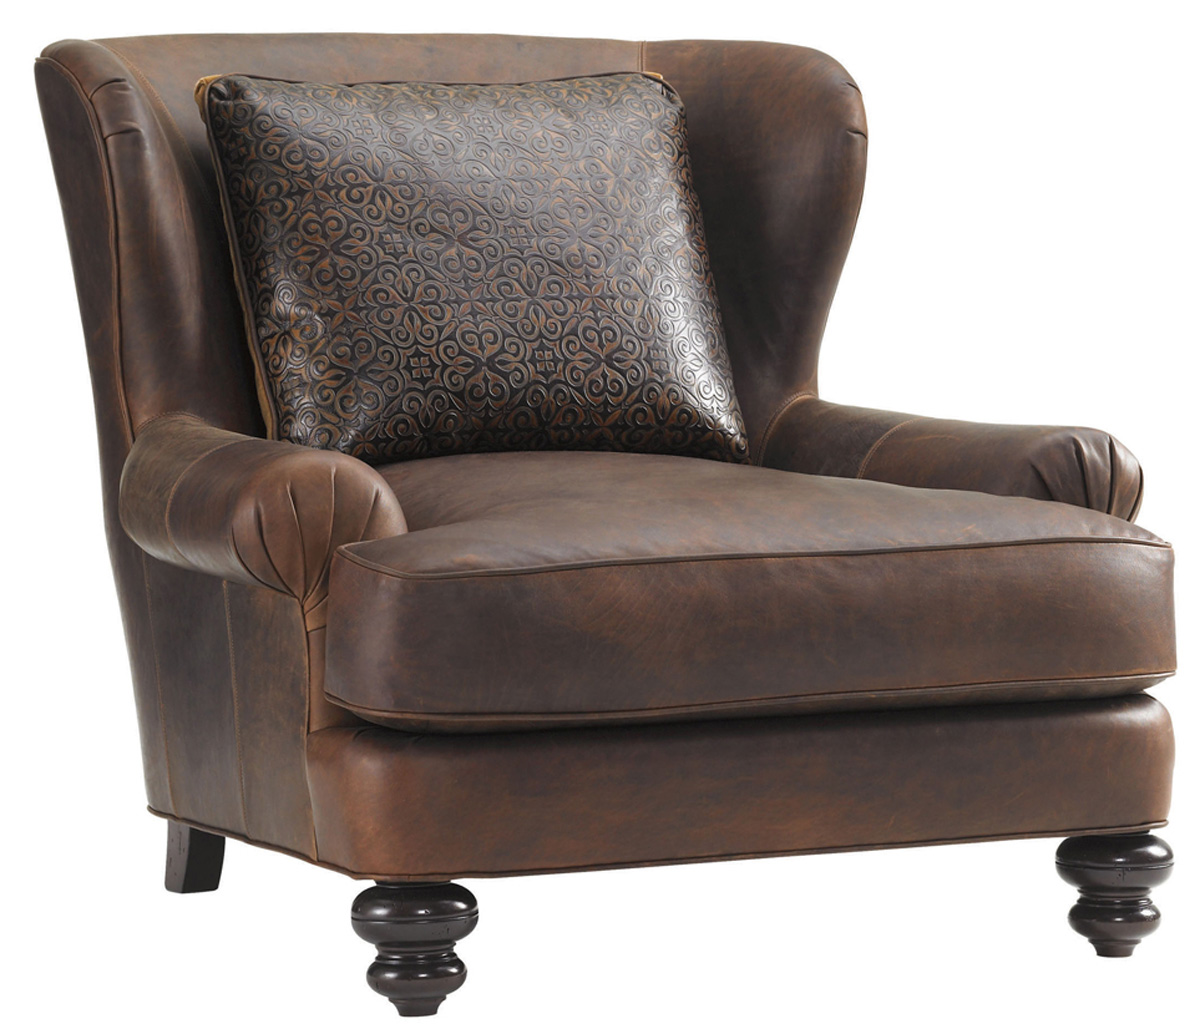 KENT LEATHER CHAIR